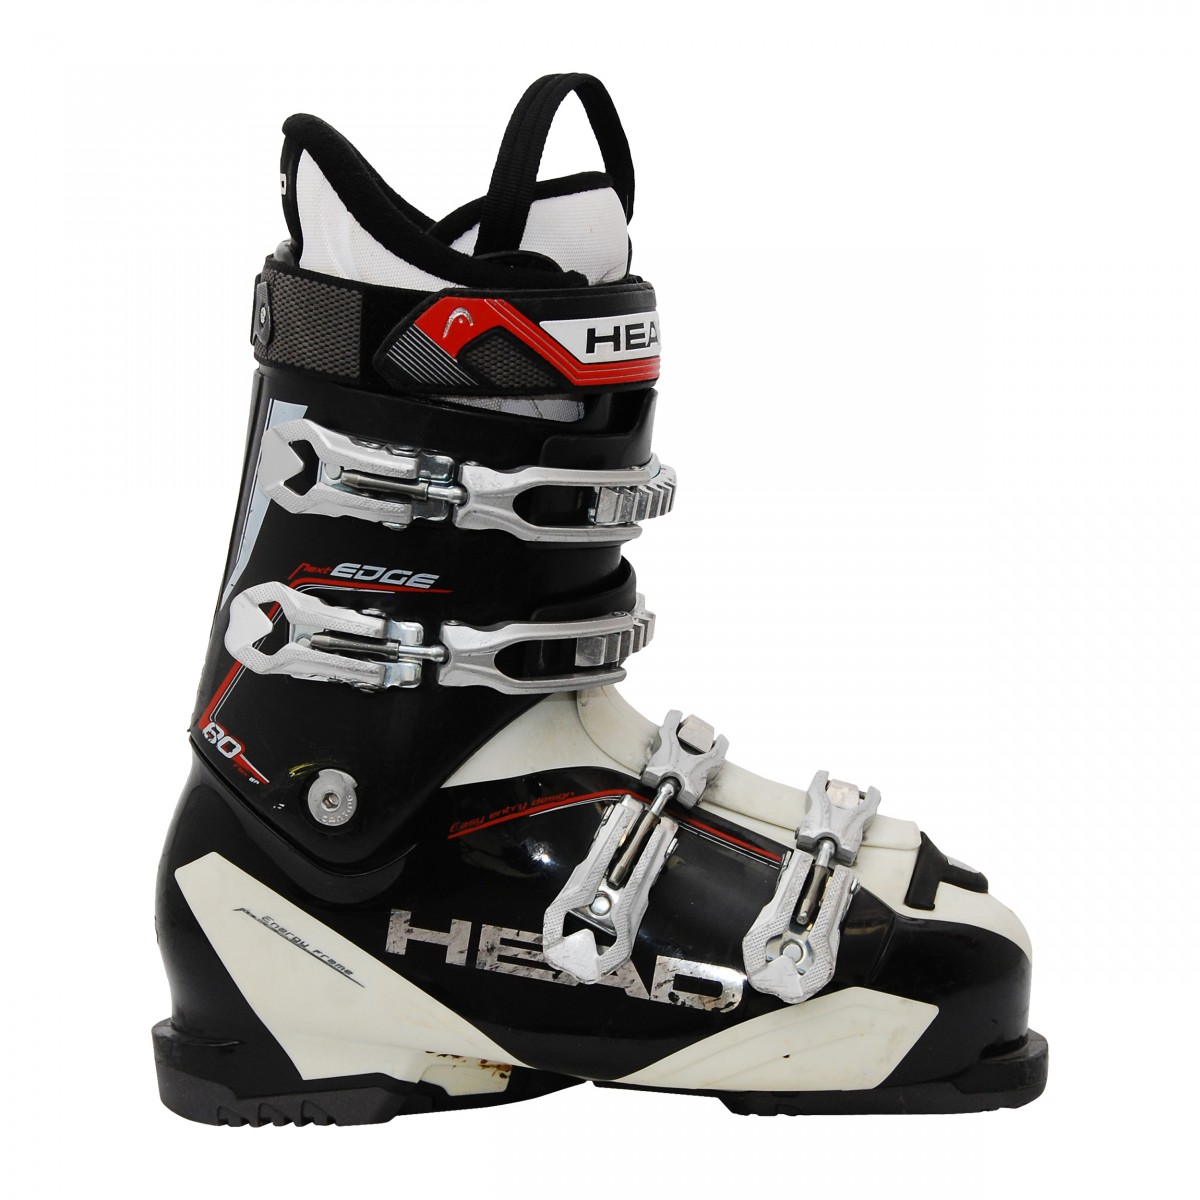 chaussures de ski occasion head next edge 80 blanc noir